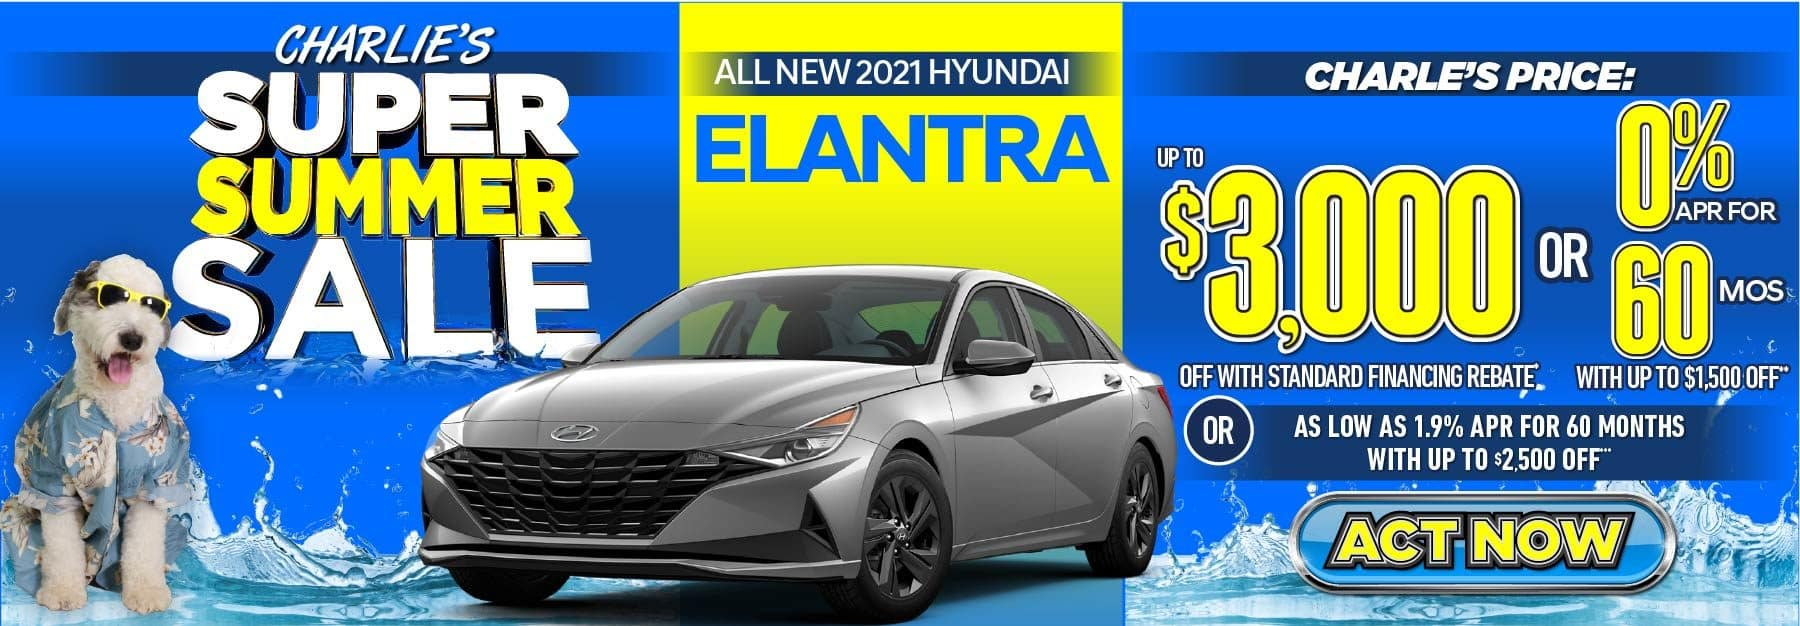 2021 Elantra up to $3000 off with standard financing rebate or 0% APR for 60 months with up to $1500 off or as low as 1.9% APR for 60 months with up to $2500 off. Act Now.